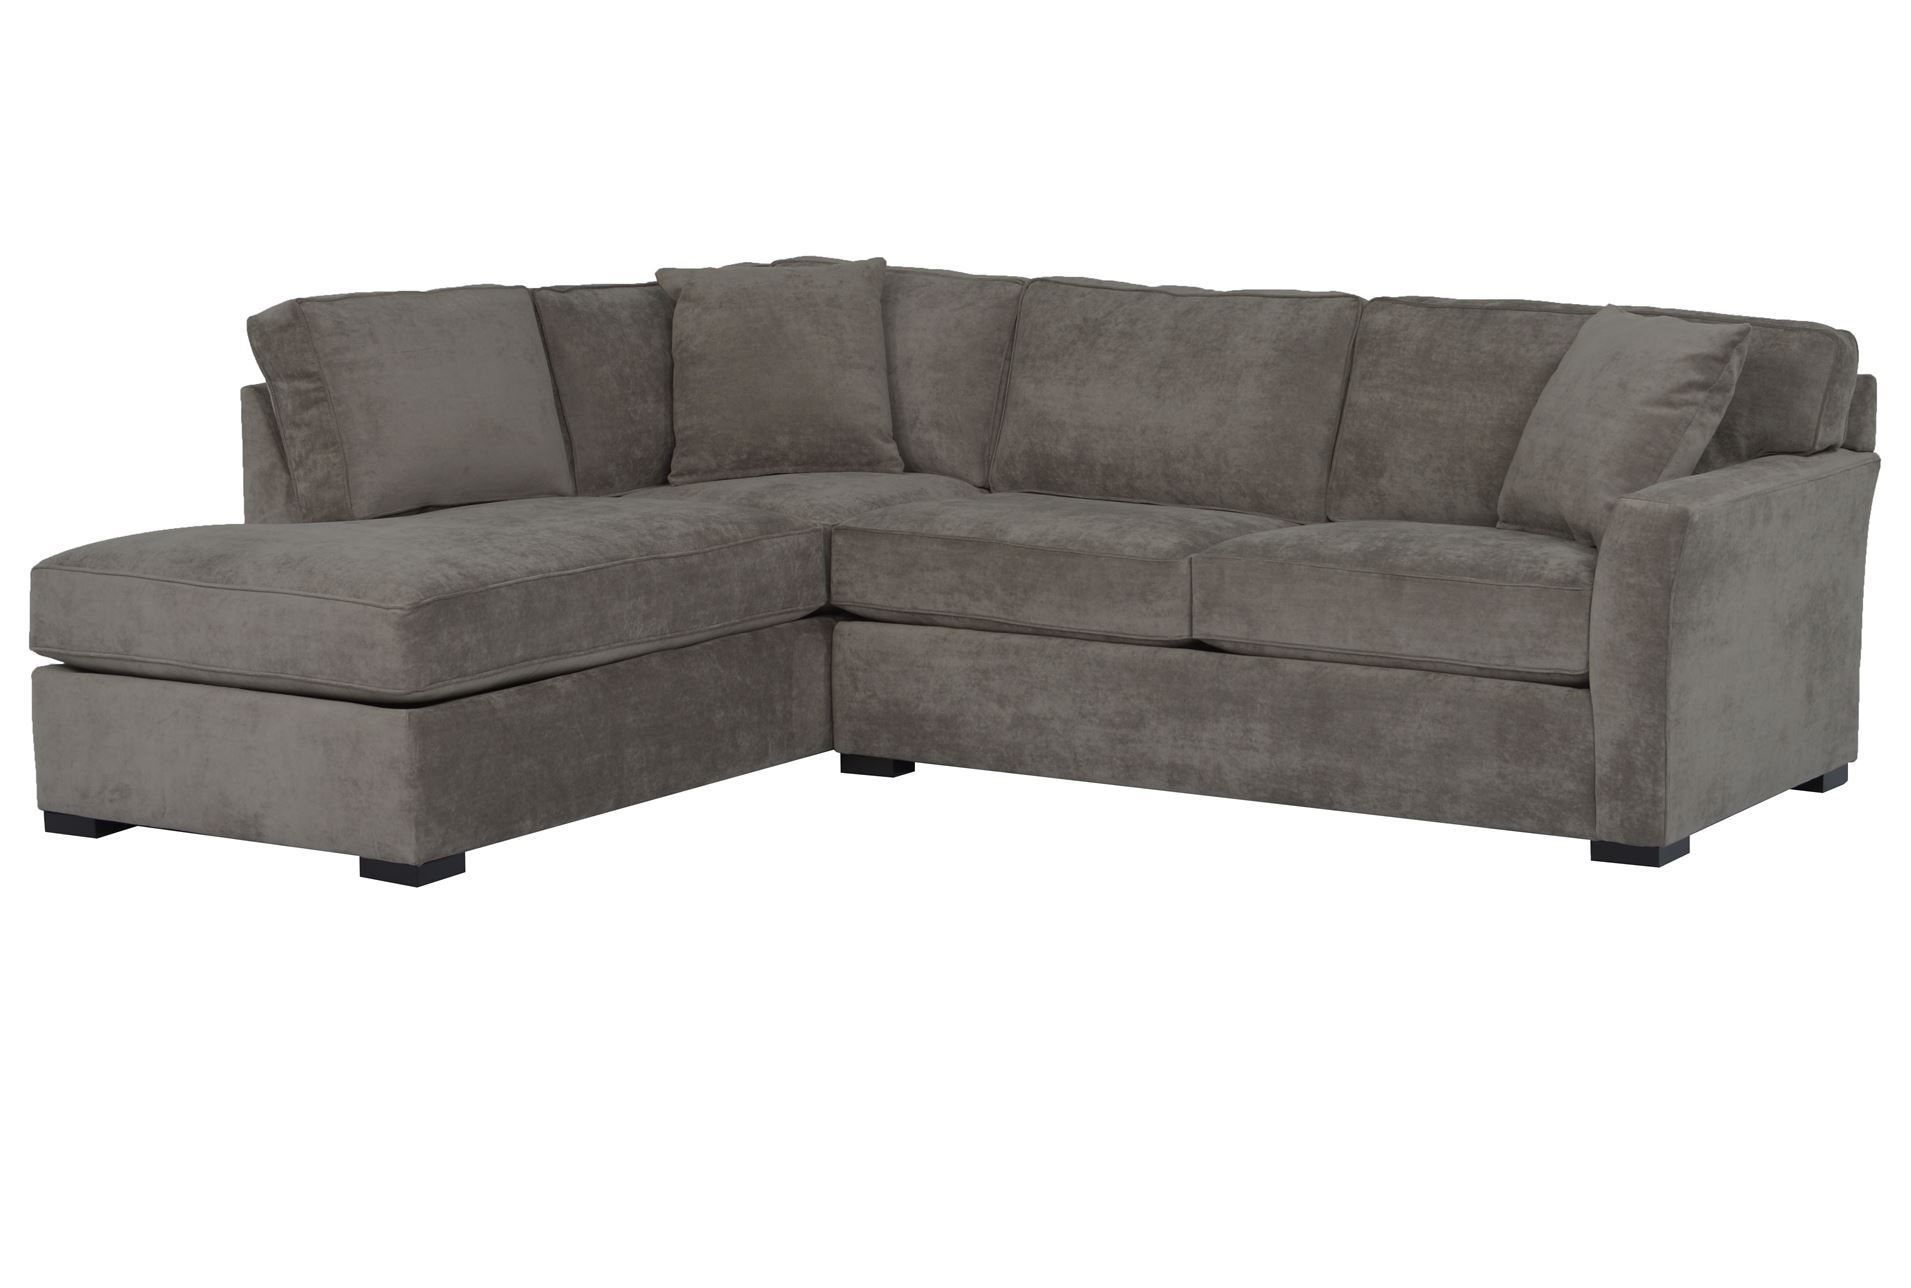 Aspen 2 Piece Sleeper Sectional W/laf Chaise | Living Room Throughout Aspen 2 Piece Sleeper Sectionals With Laf Chaise (Image 8 of 25)